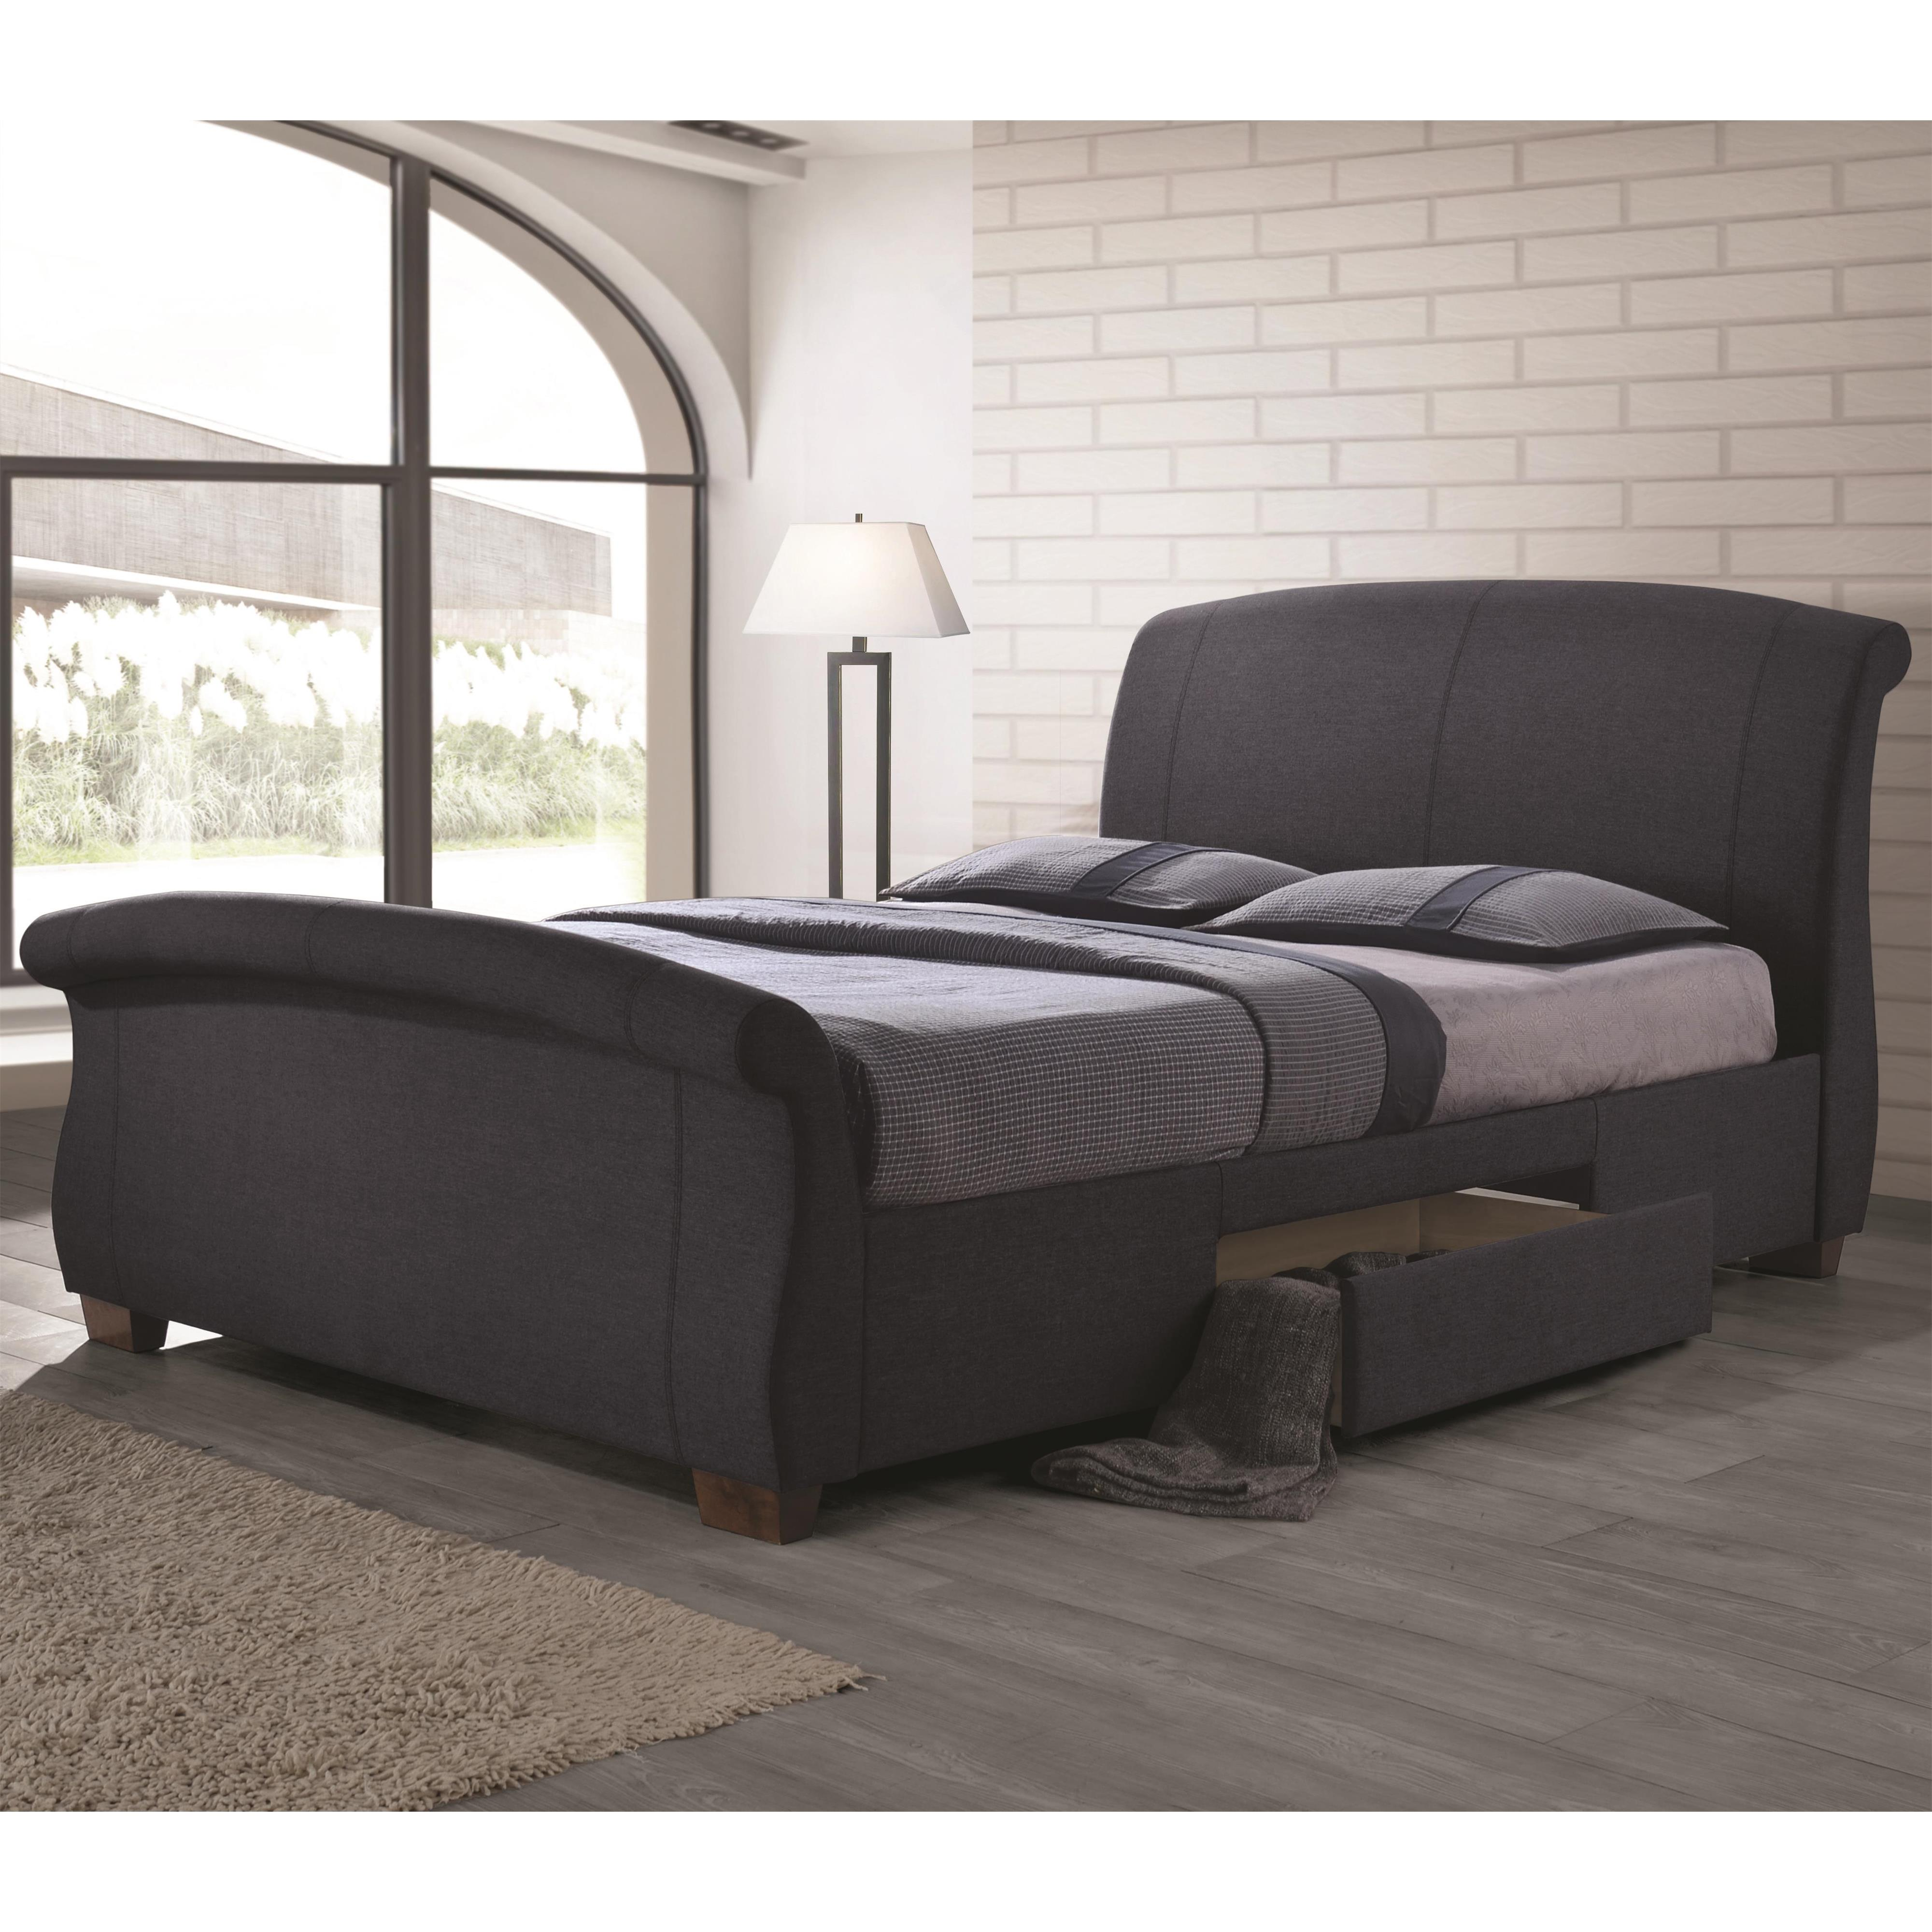 Coaster Bristol Fully Upholstered Queen Bed - Item Number: 300524Q